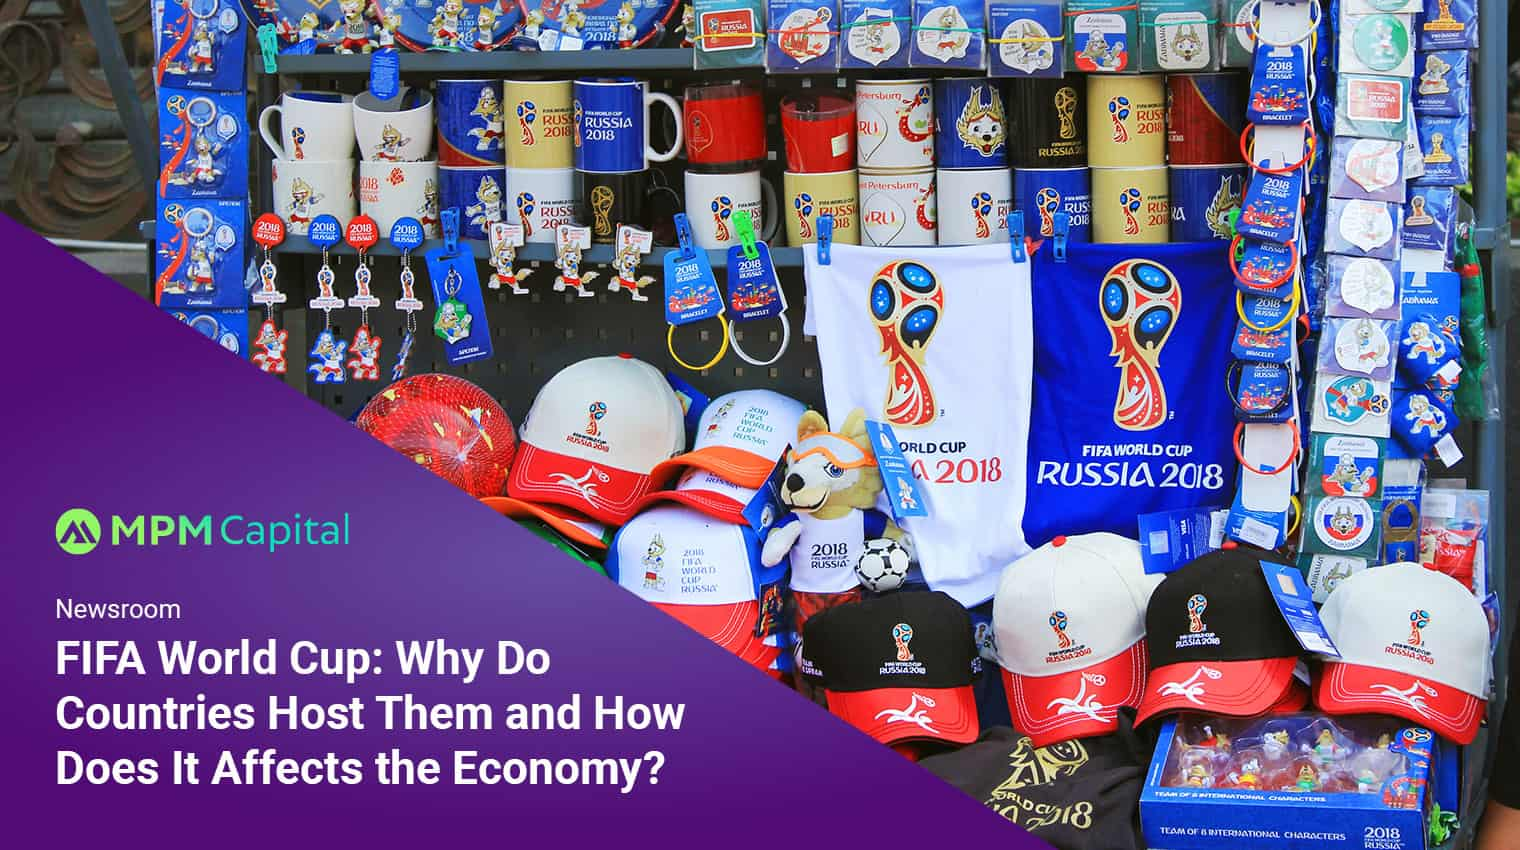 FIFA World Cup: Why Do Countries Host Them and How Does It Affects the Economy?